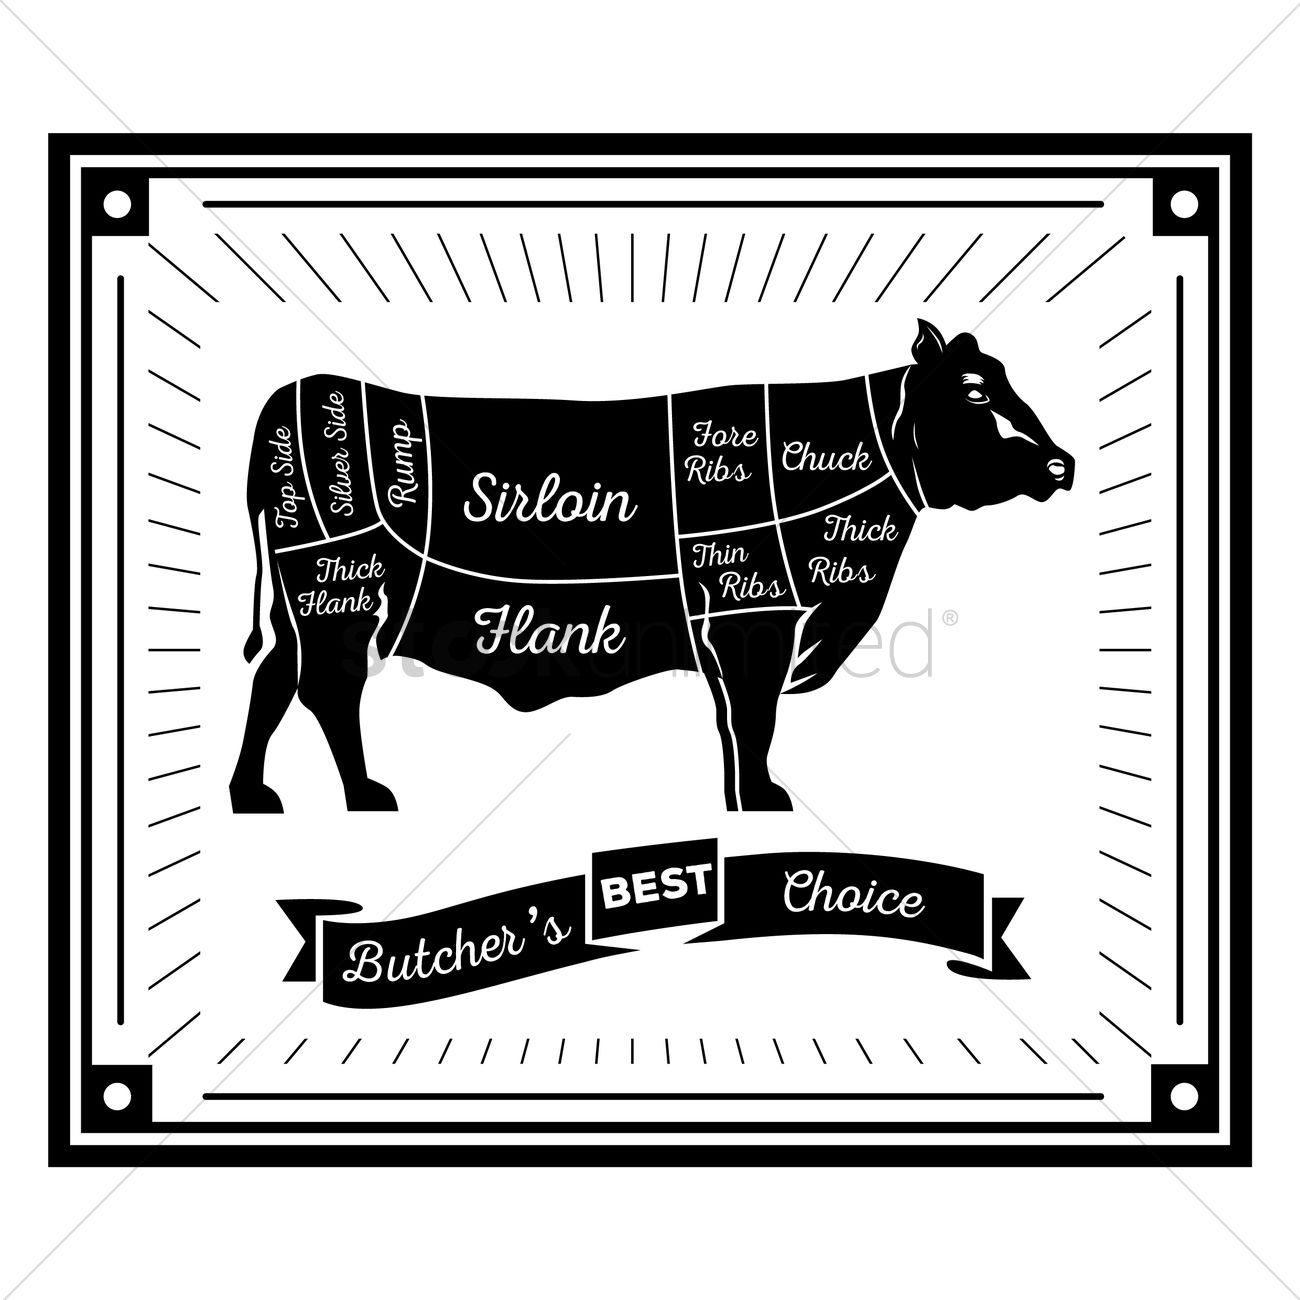 butcher cow cuts diagram_1490977 butcher cow cuts diagram vector image 1490977 stockunlimited